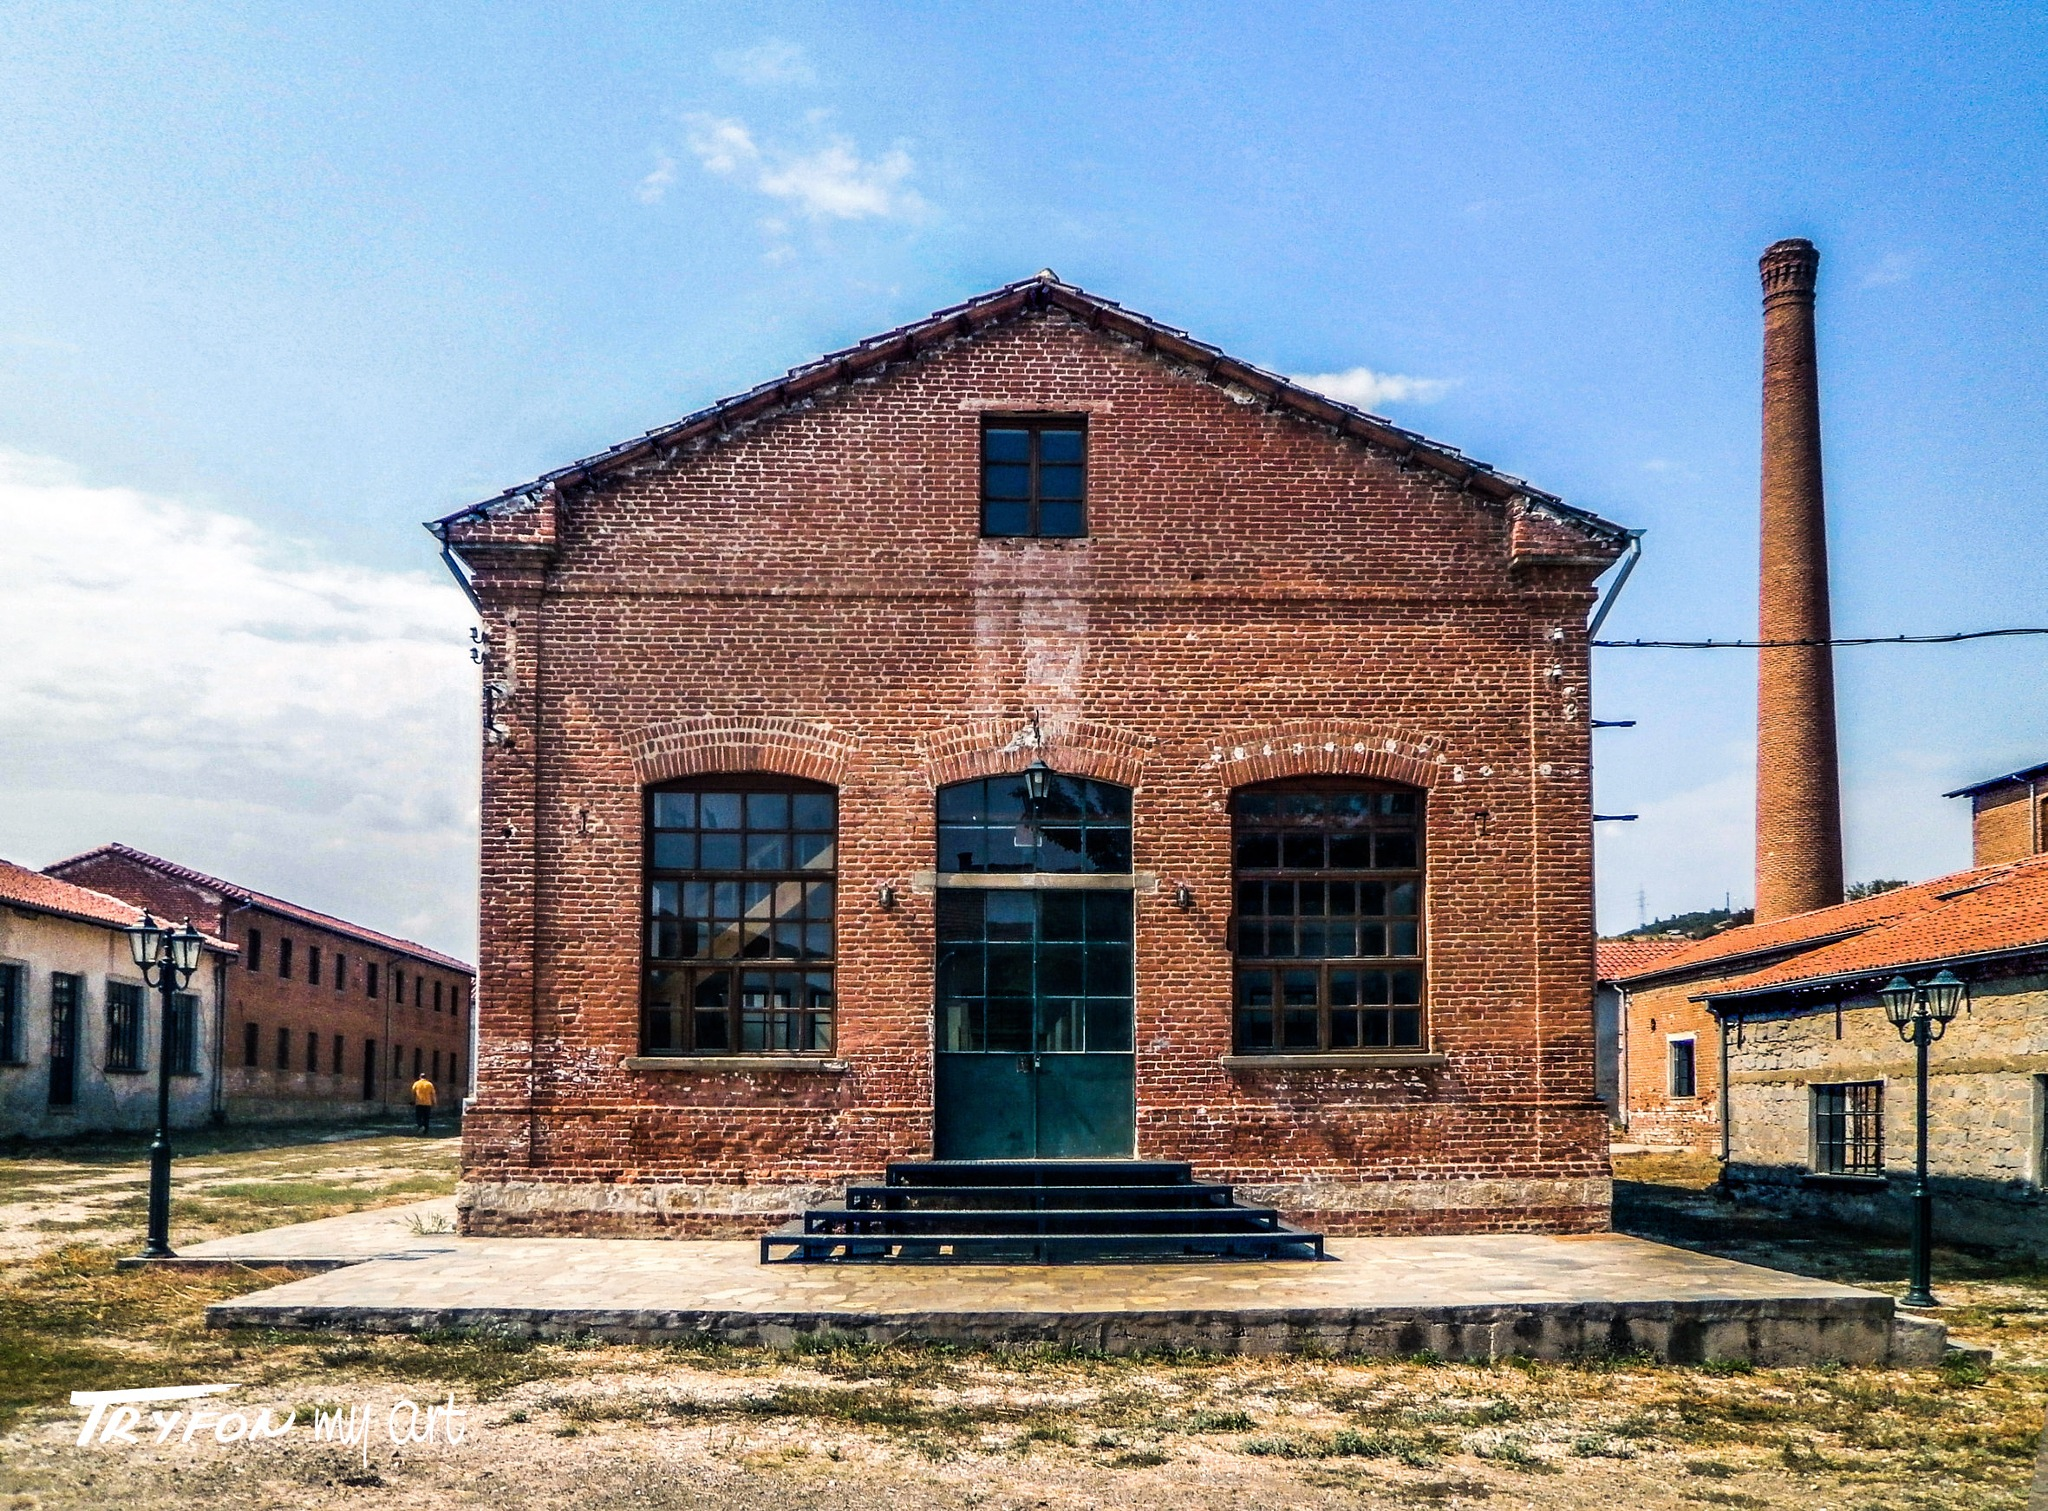 Factory for silk museum - (1920) - 01. by tryfongraphics